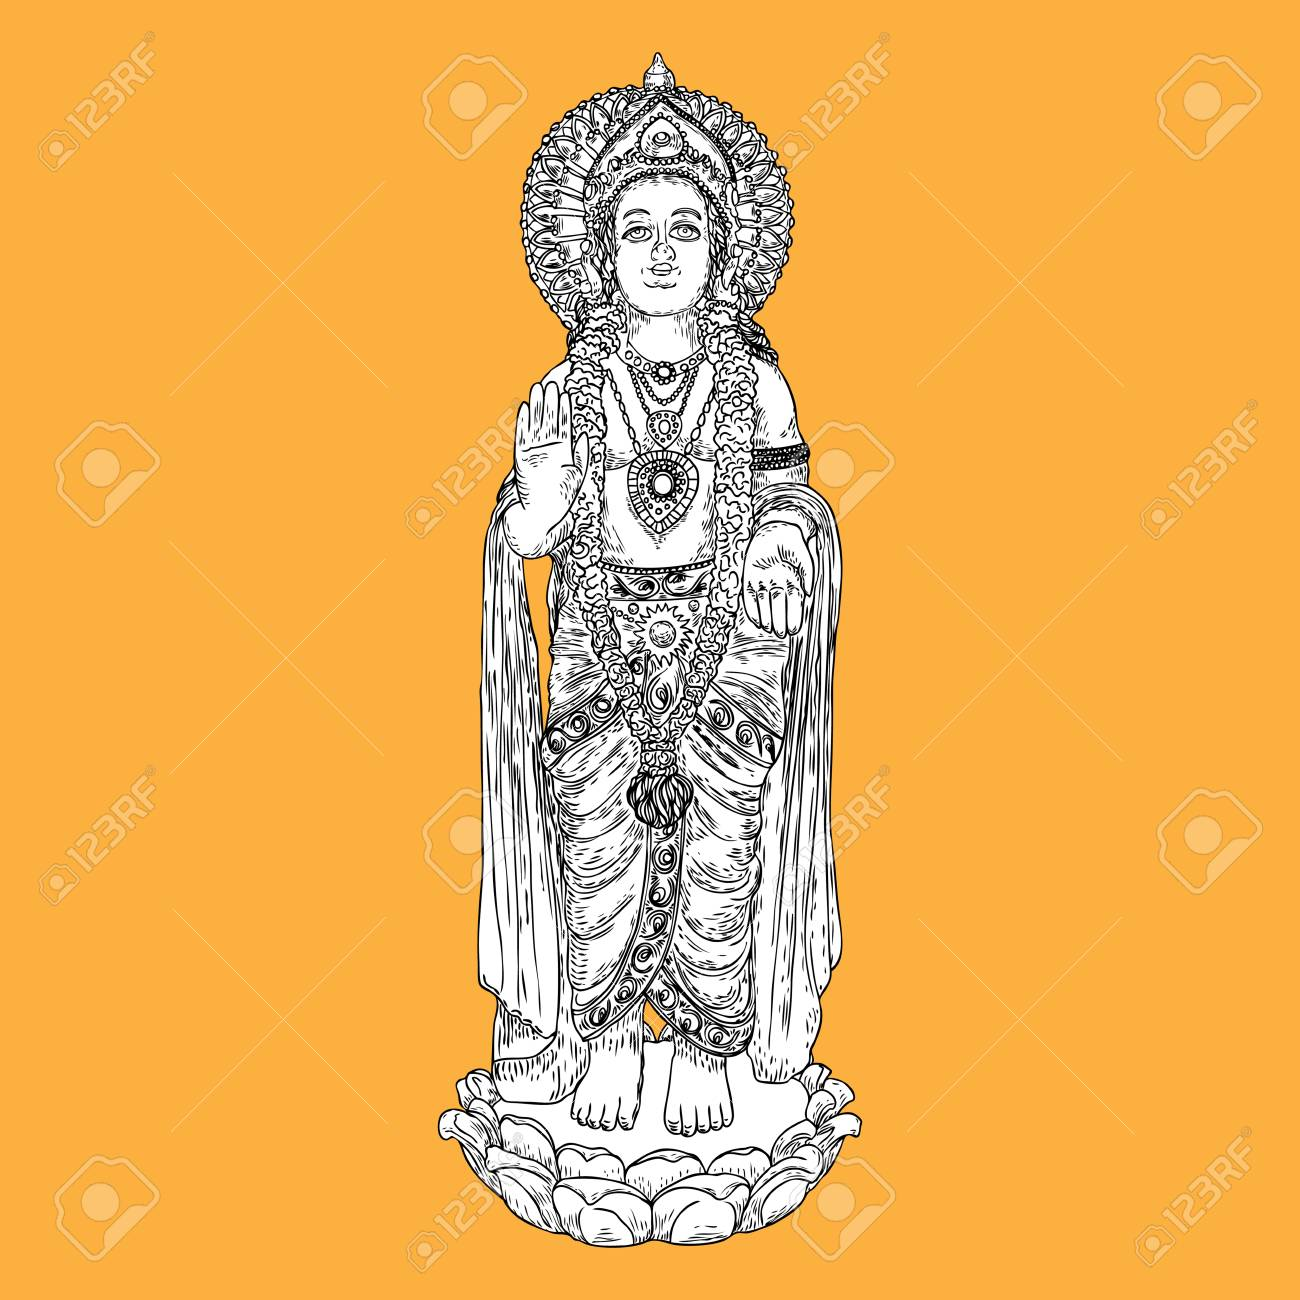 Lord Murugan classic statue drawing, God of war, son of Shiva